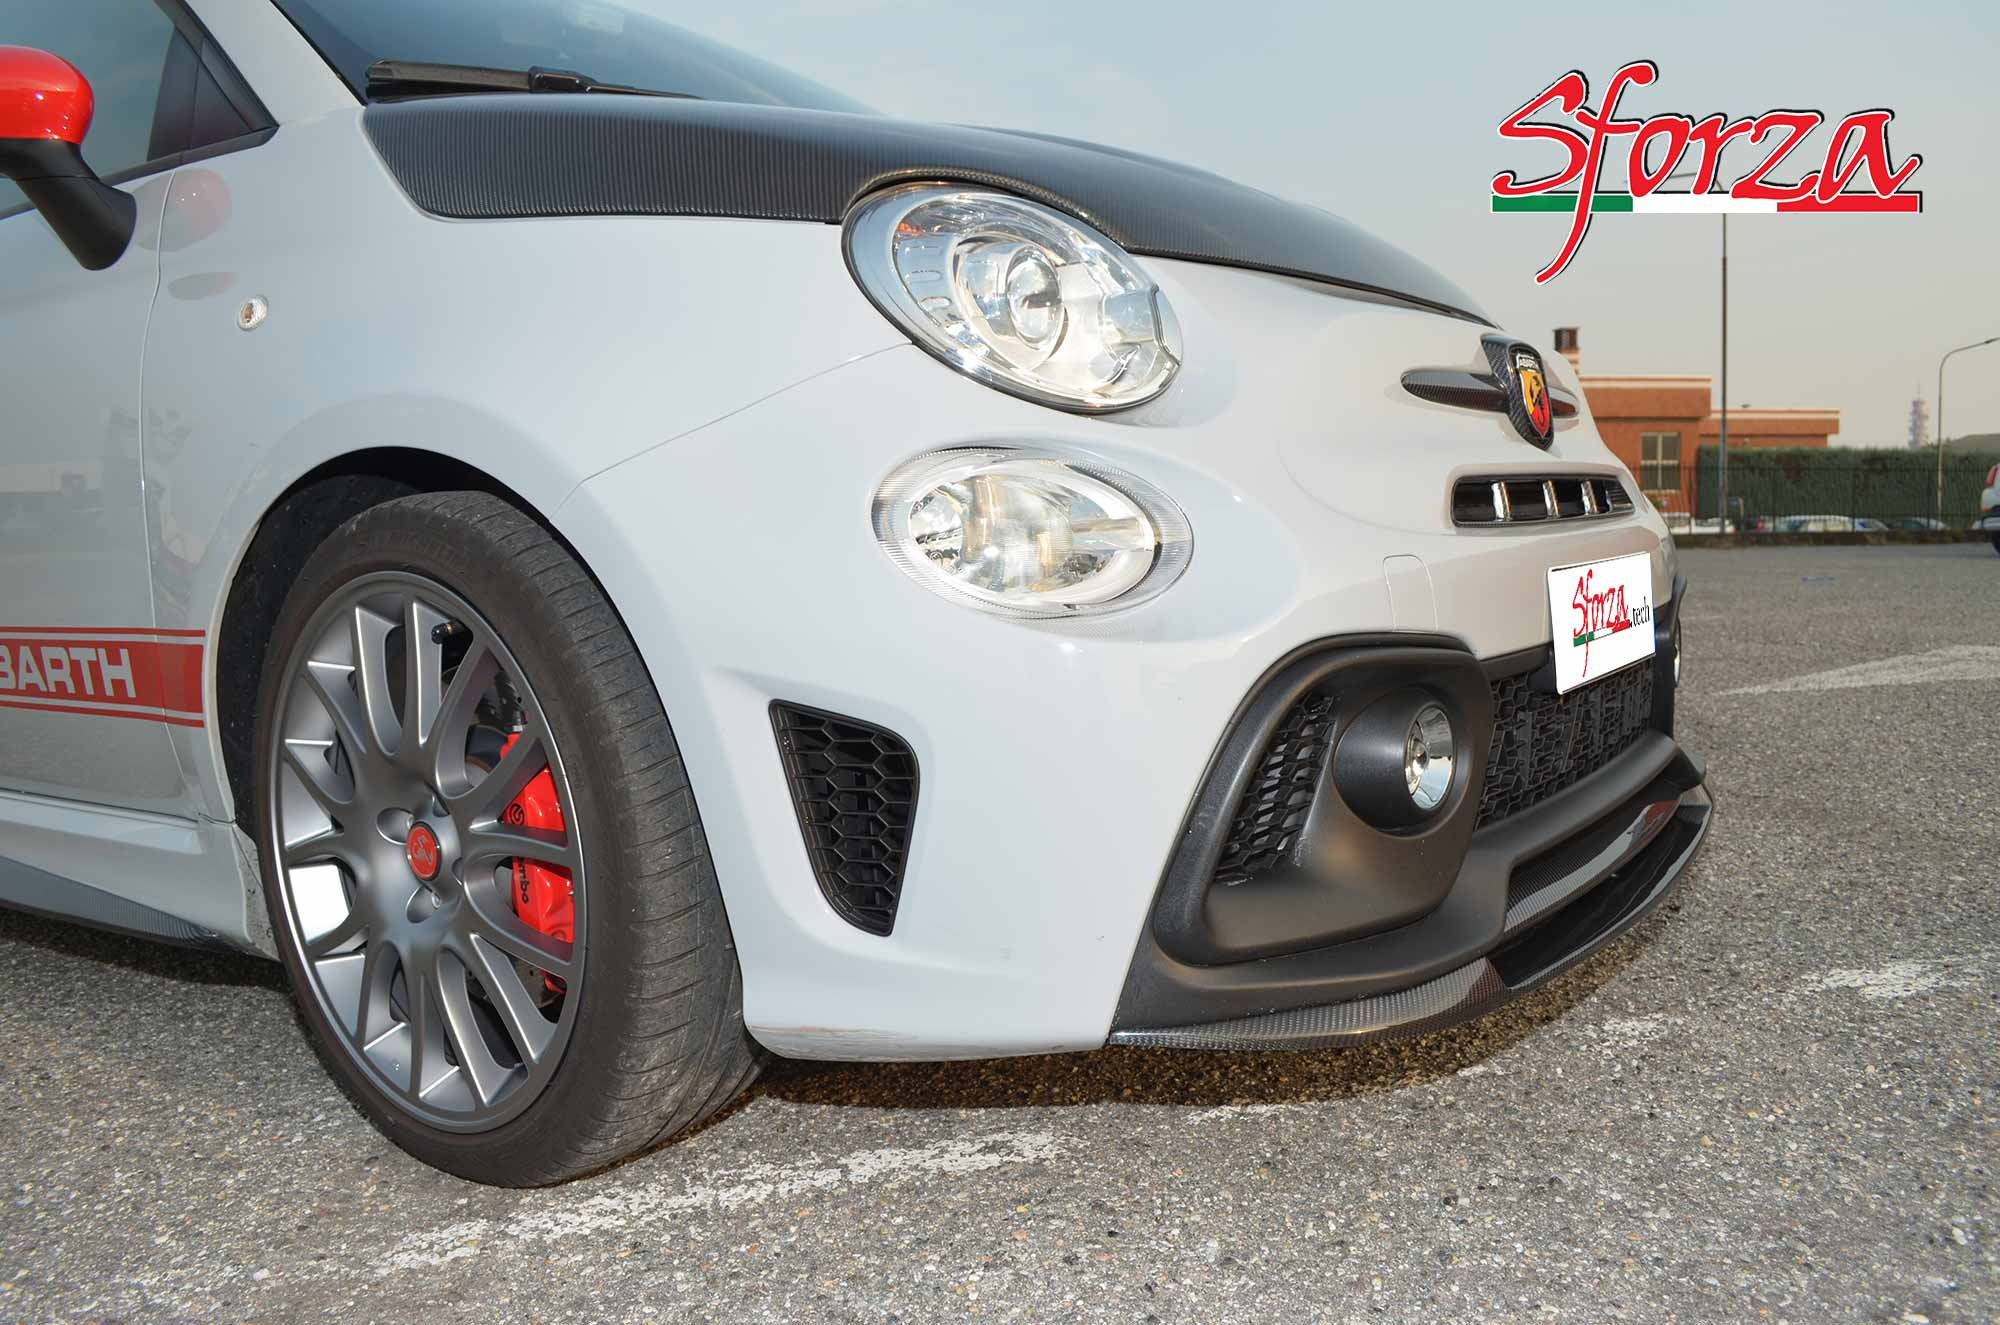 Home / Abarth 595 (2016) / Abarth 595 carbon front spoiler